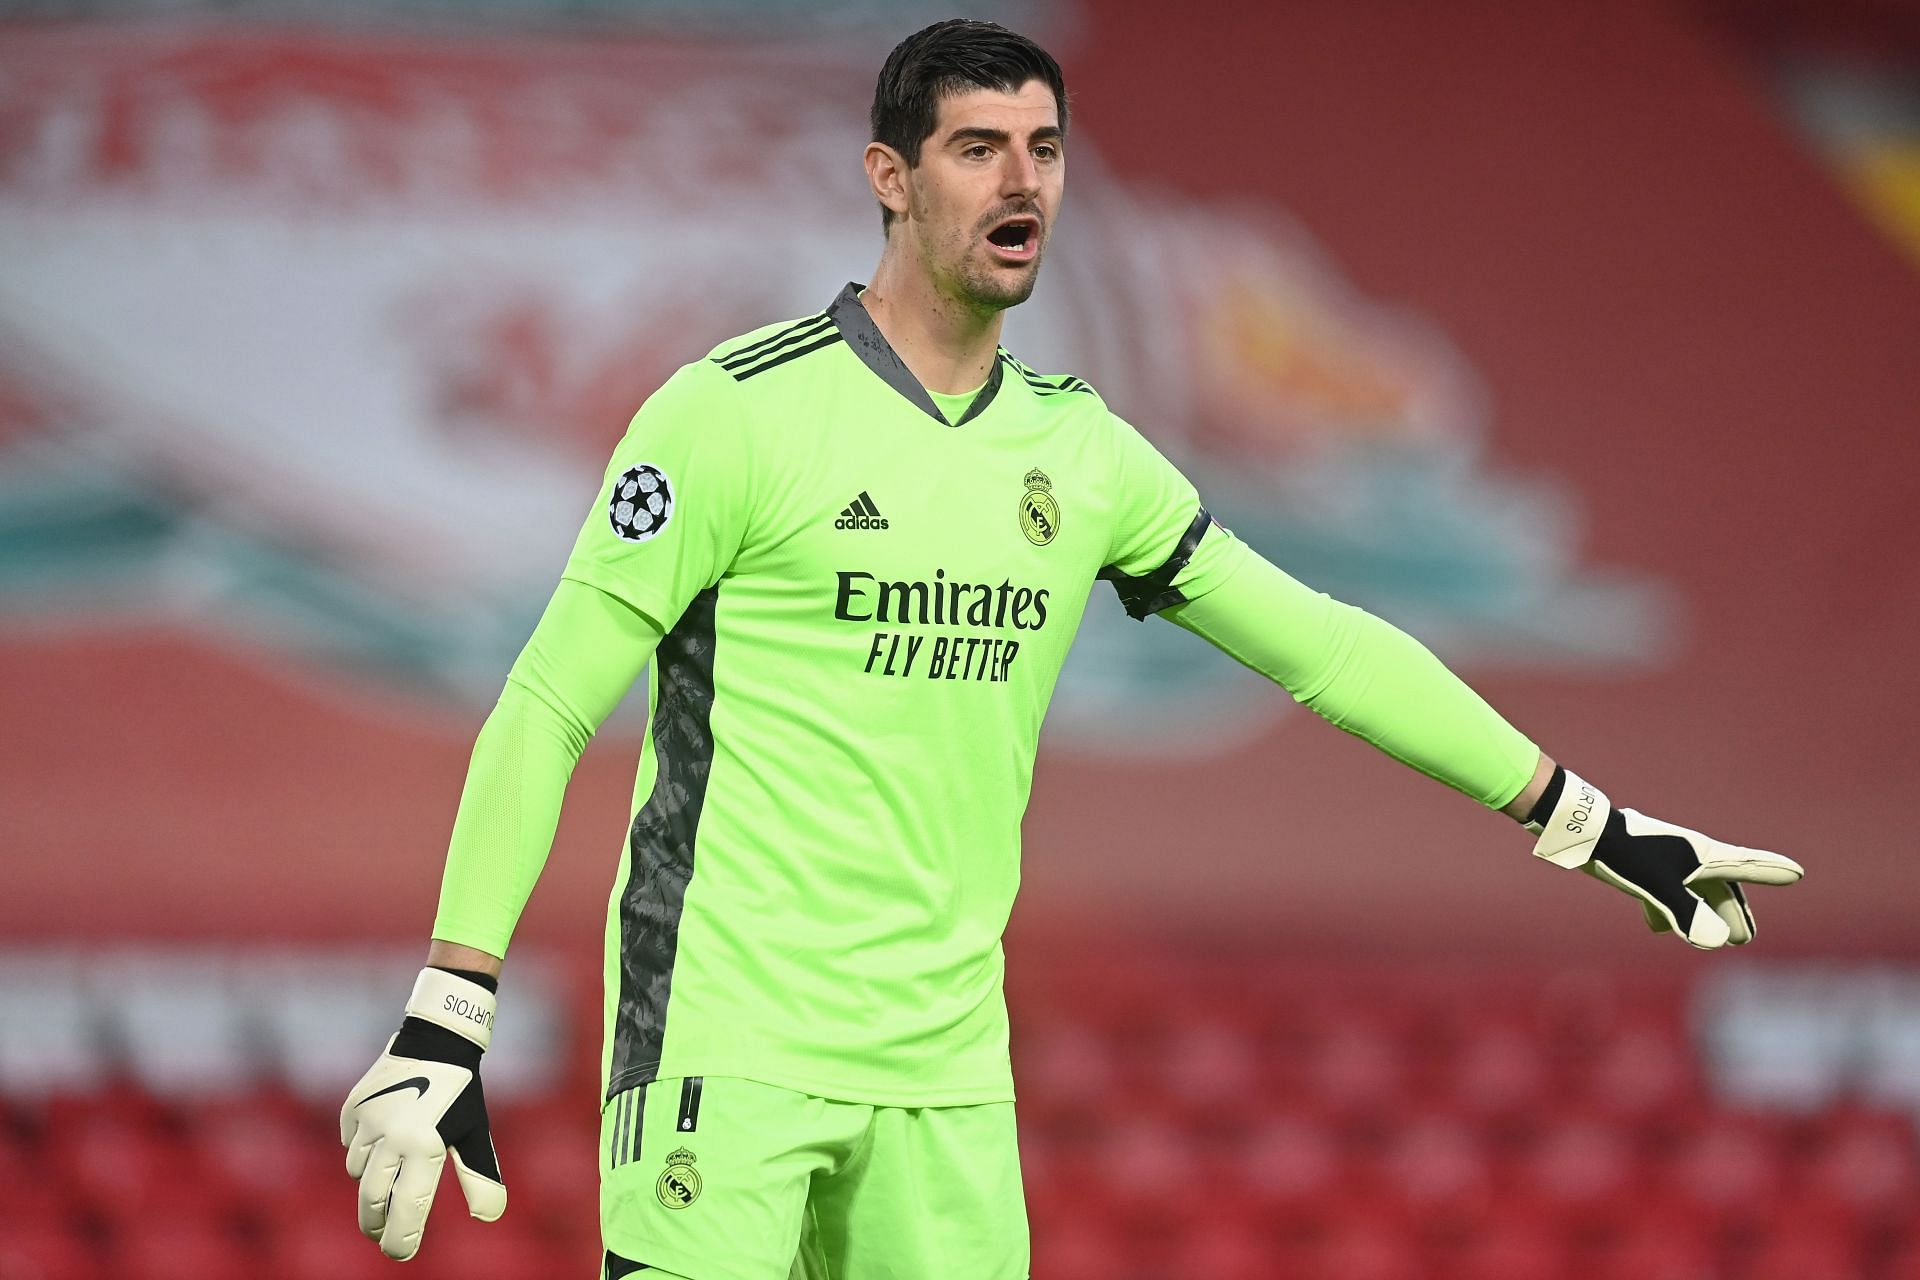 Thibaut Courtois is one of the most valuable players at Real Madrid.